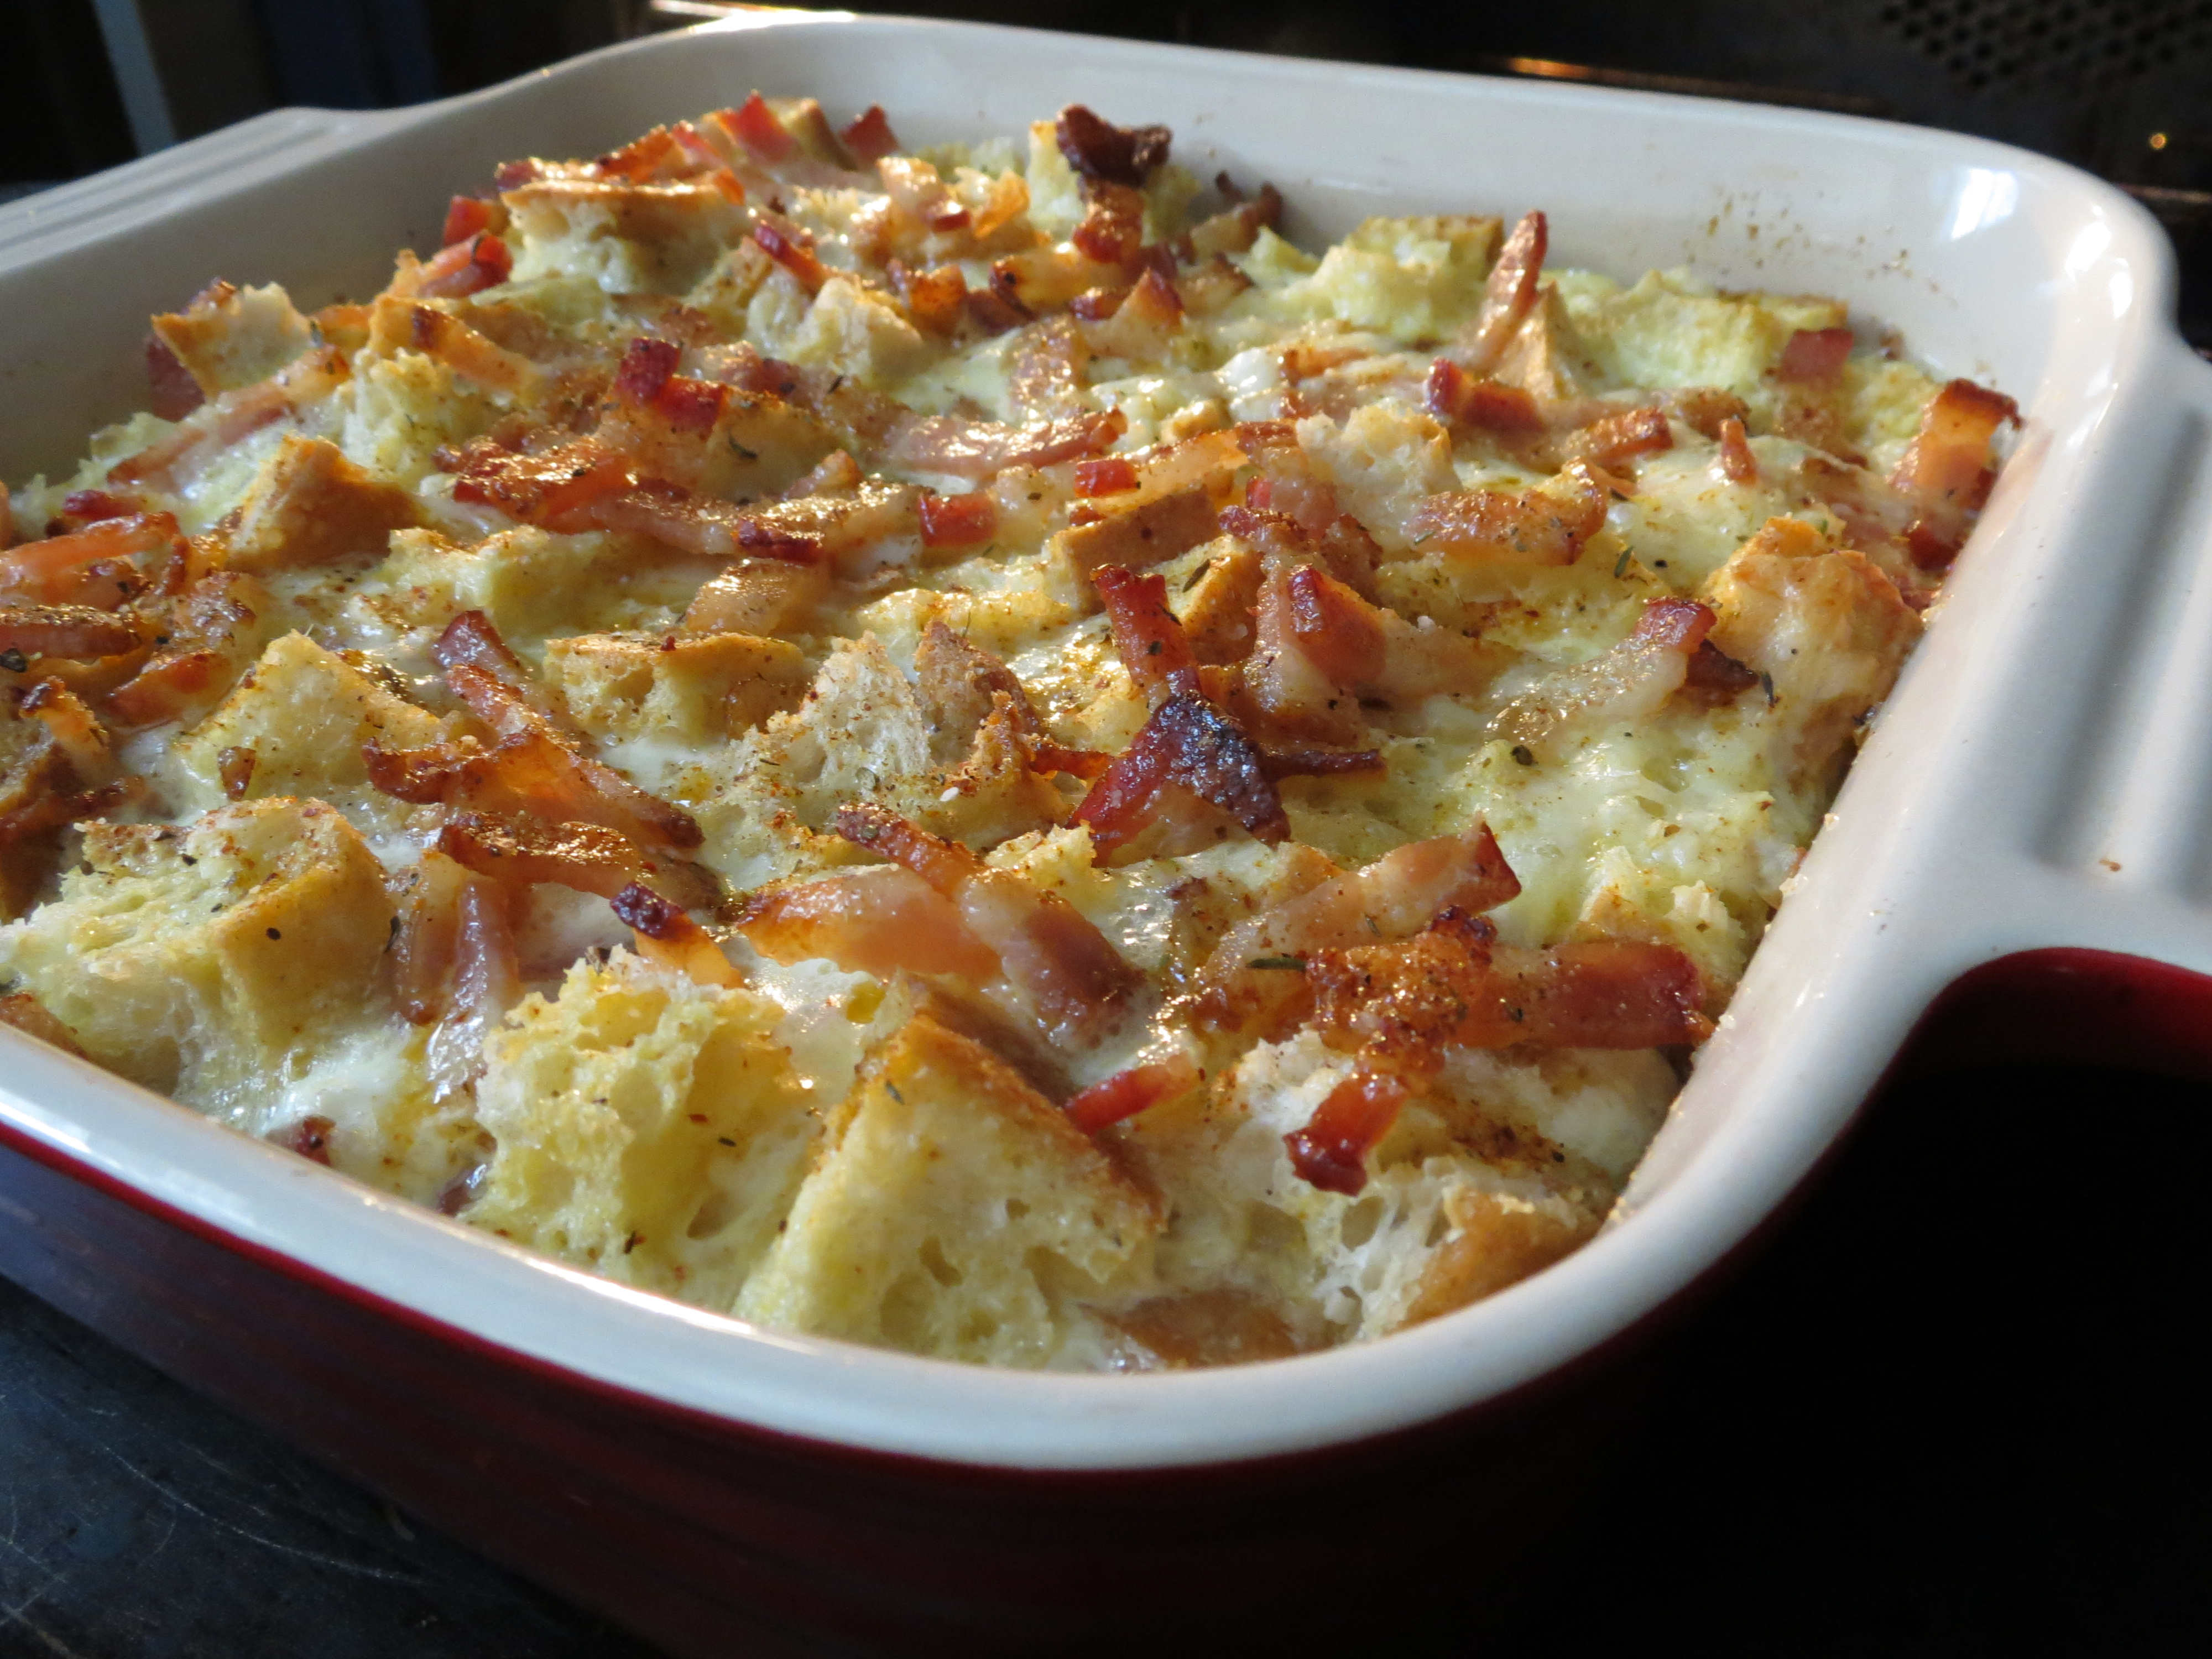 Egg Strata Prepossessing With Bacon Egg and Cheese Strata Photos